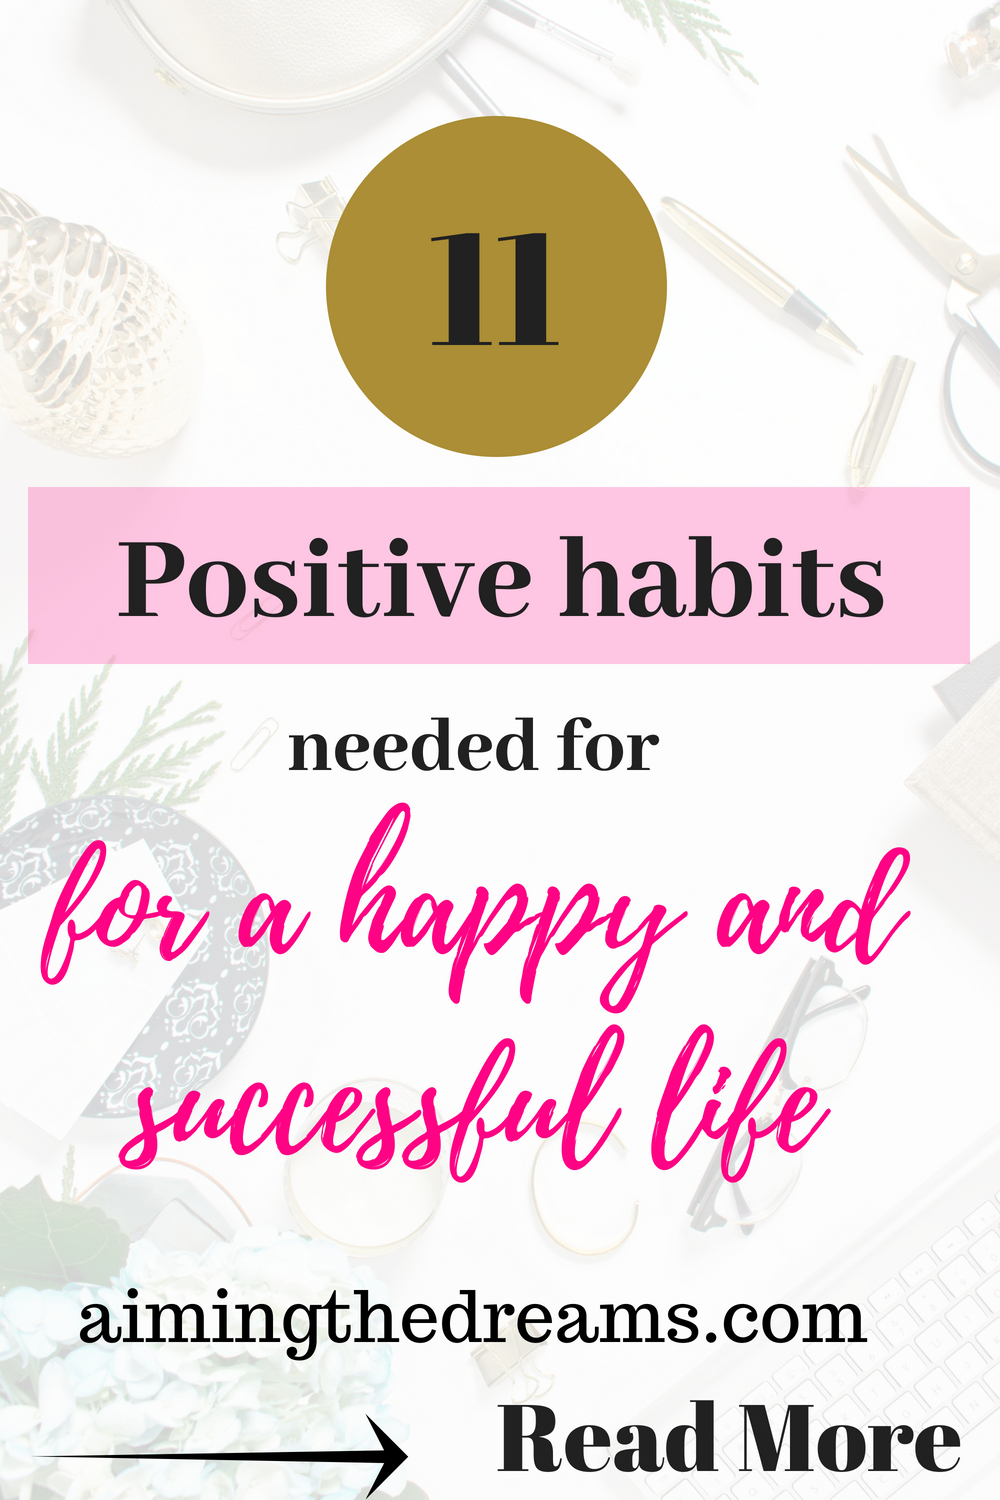 Cnanging your habits towards positivity helps in making life more beautiful and success comes from all the phases of life. Little changes daily helps in gearing your life towards happiness and success.